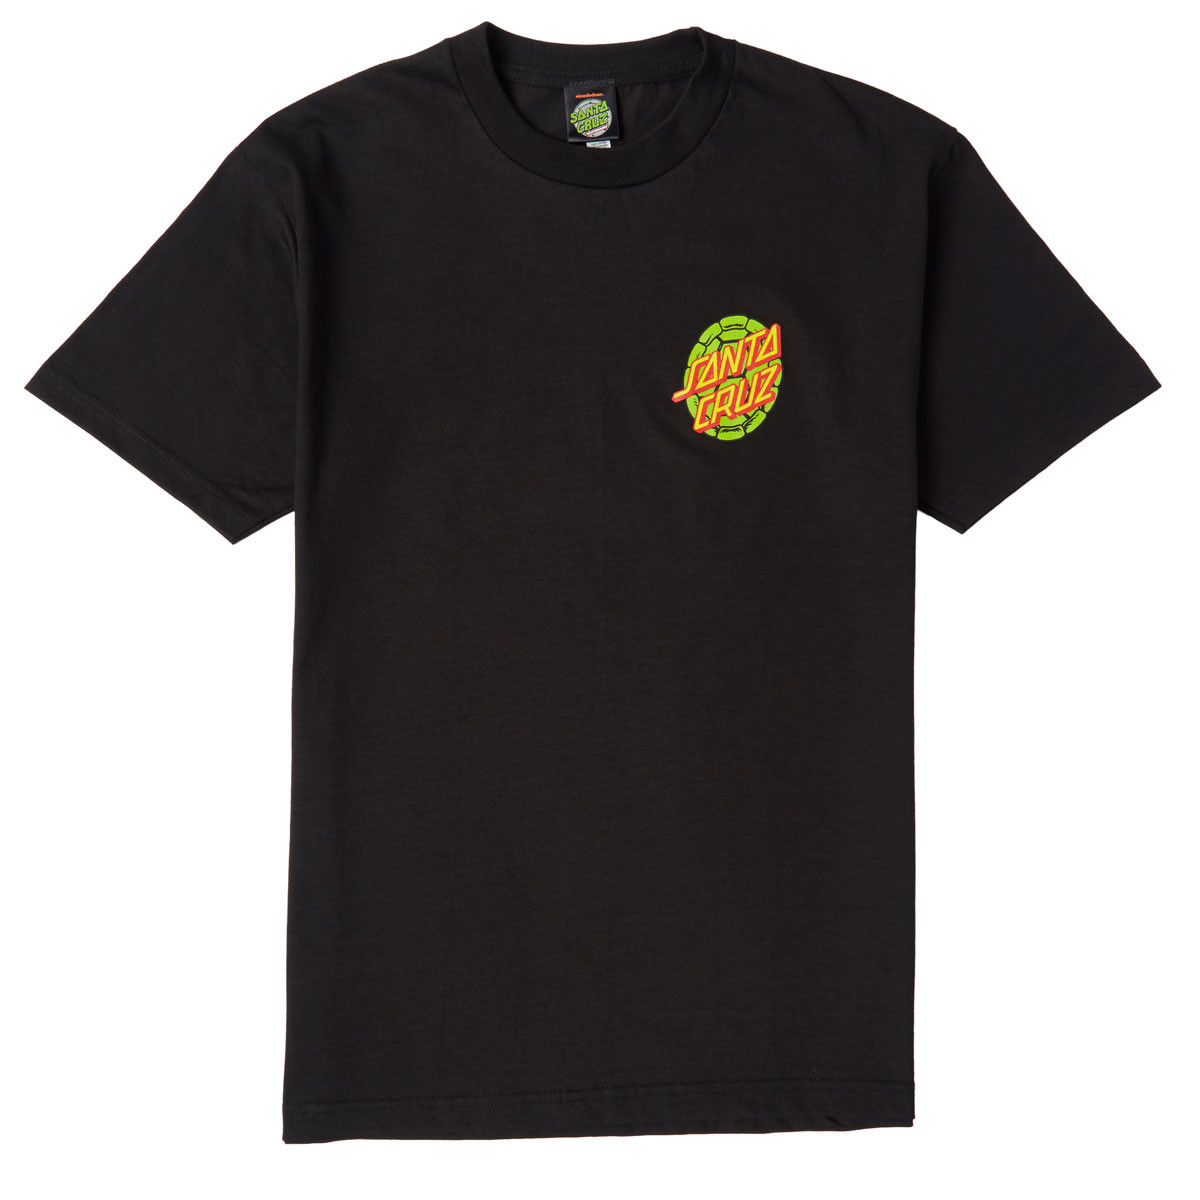 5f220fc7 Santa Cruz x TMNT Turtle Power T-Shirt - Black